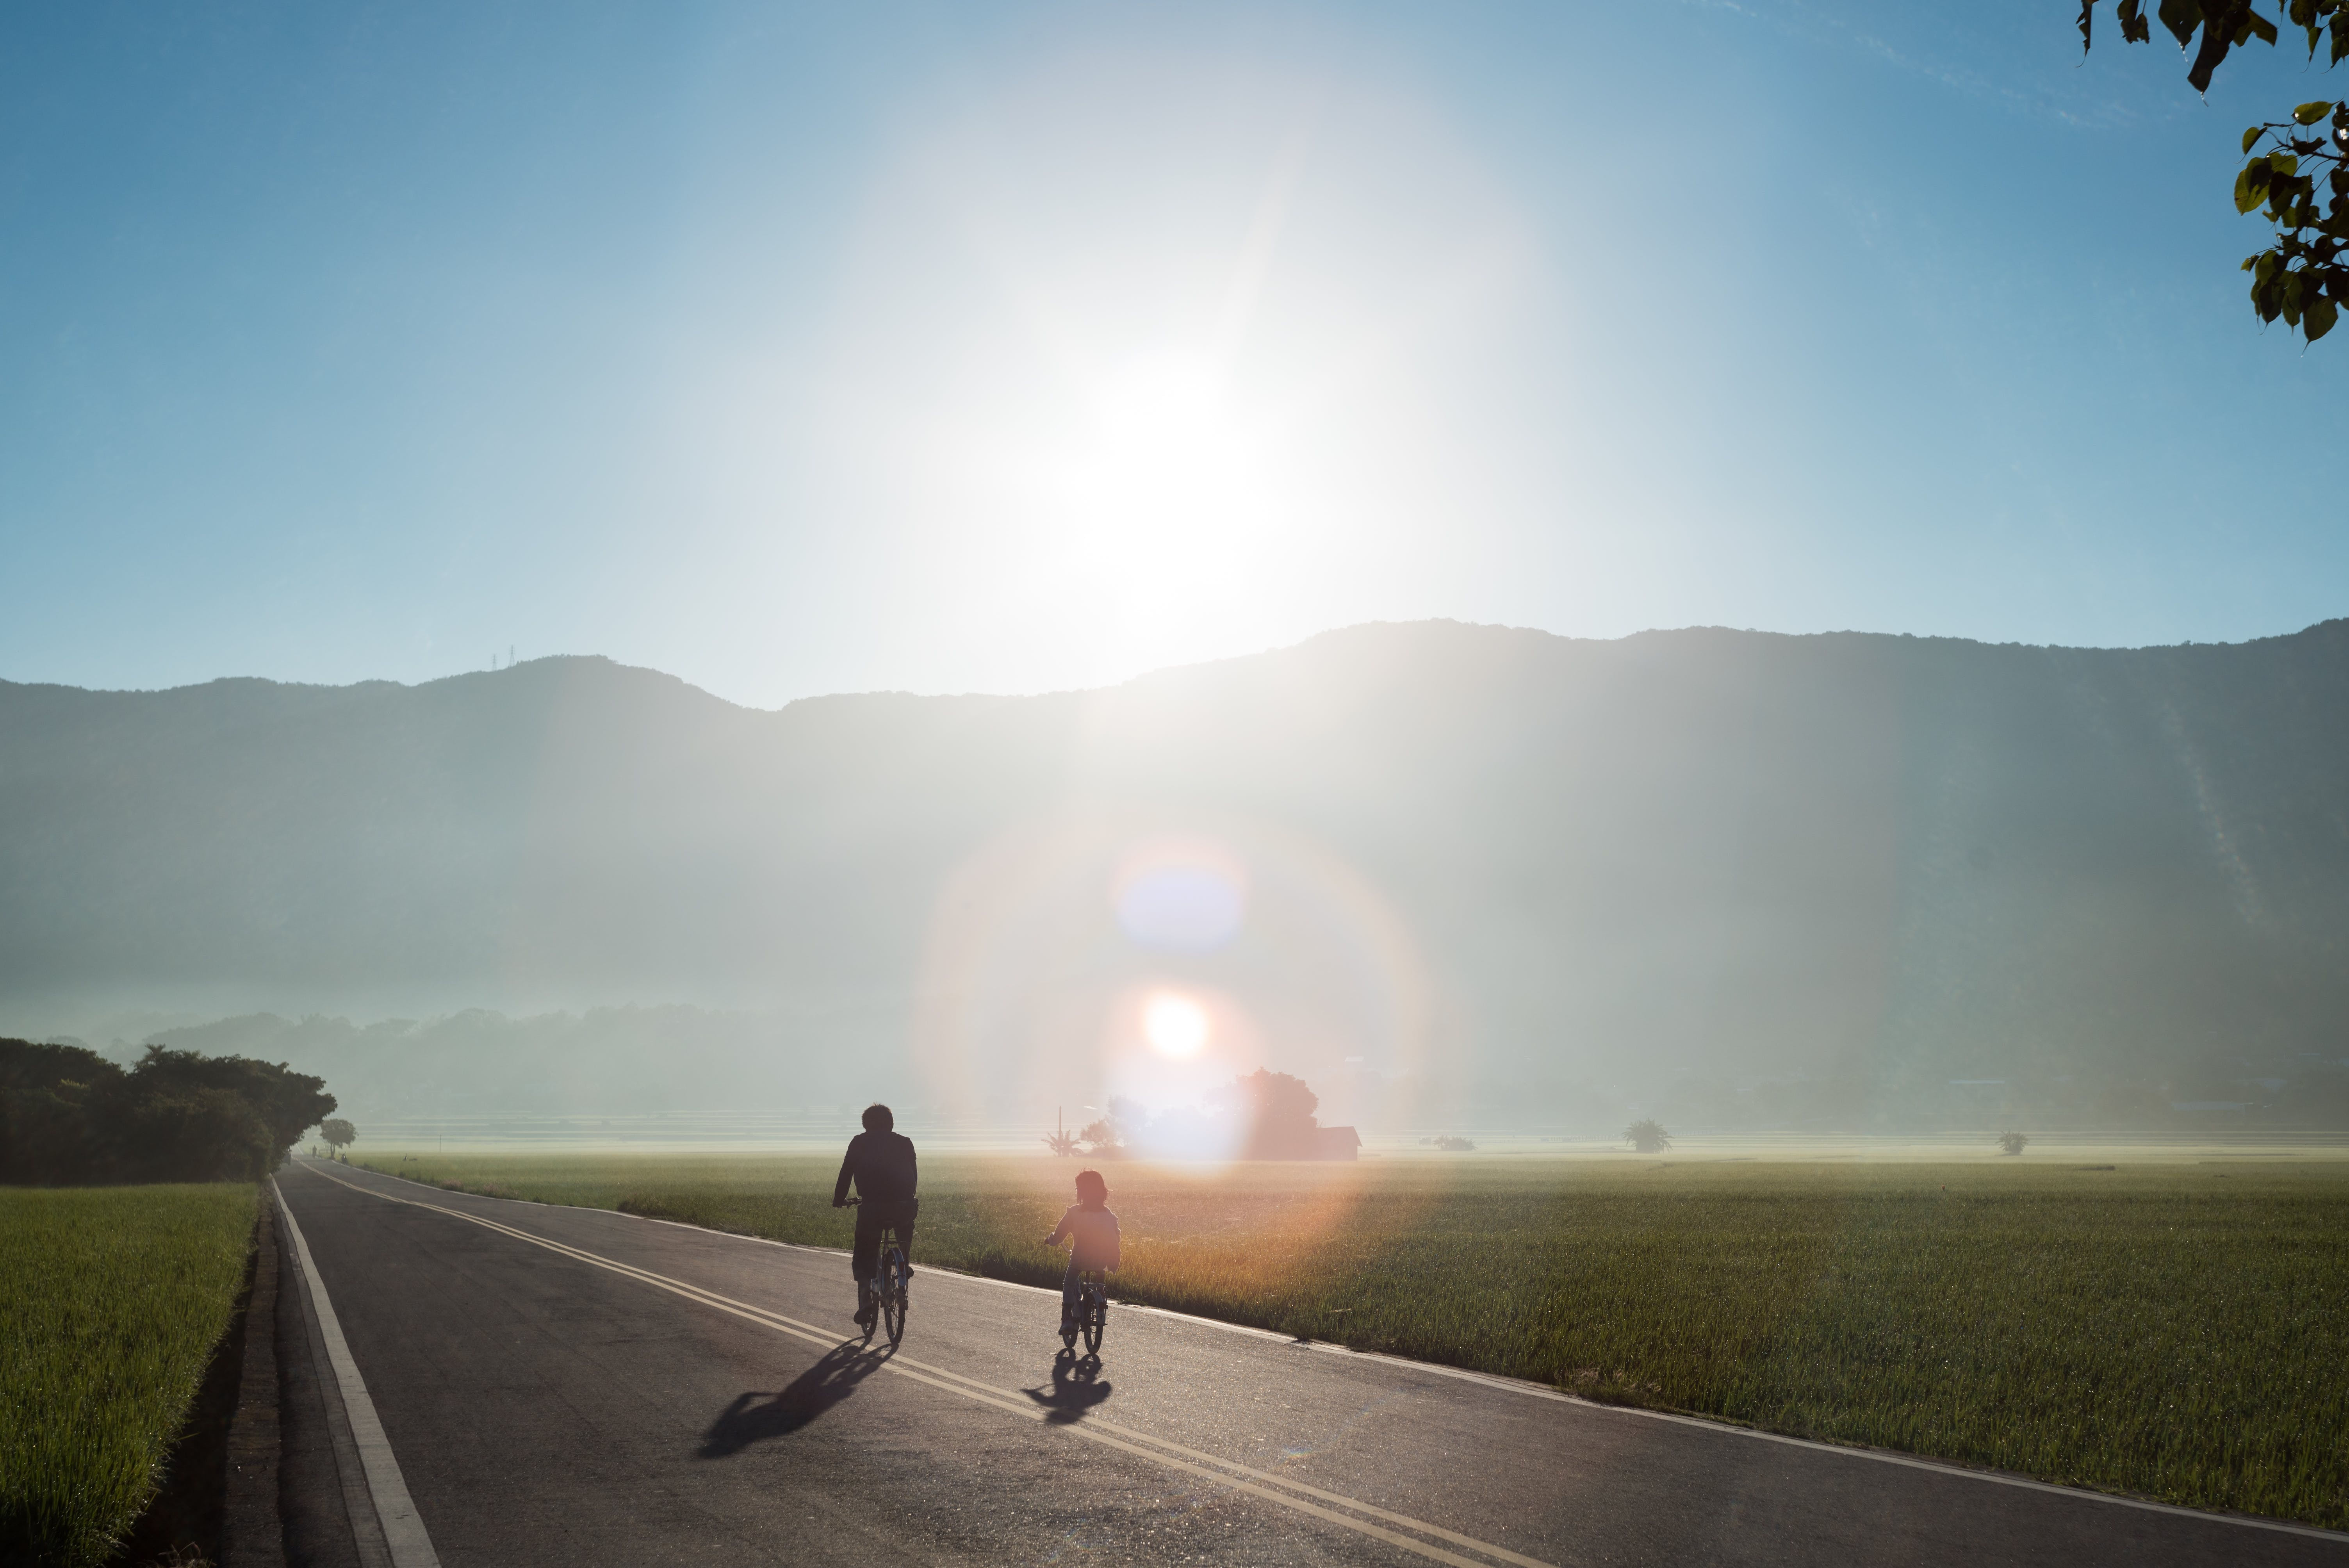 Two People On The Road